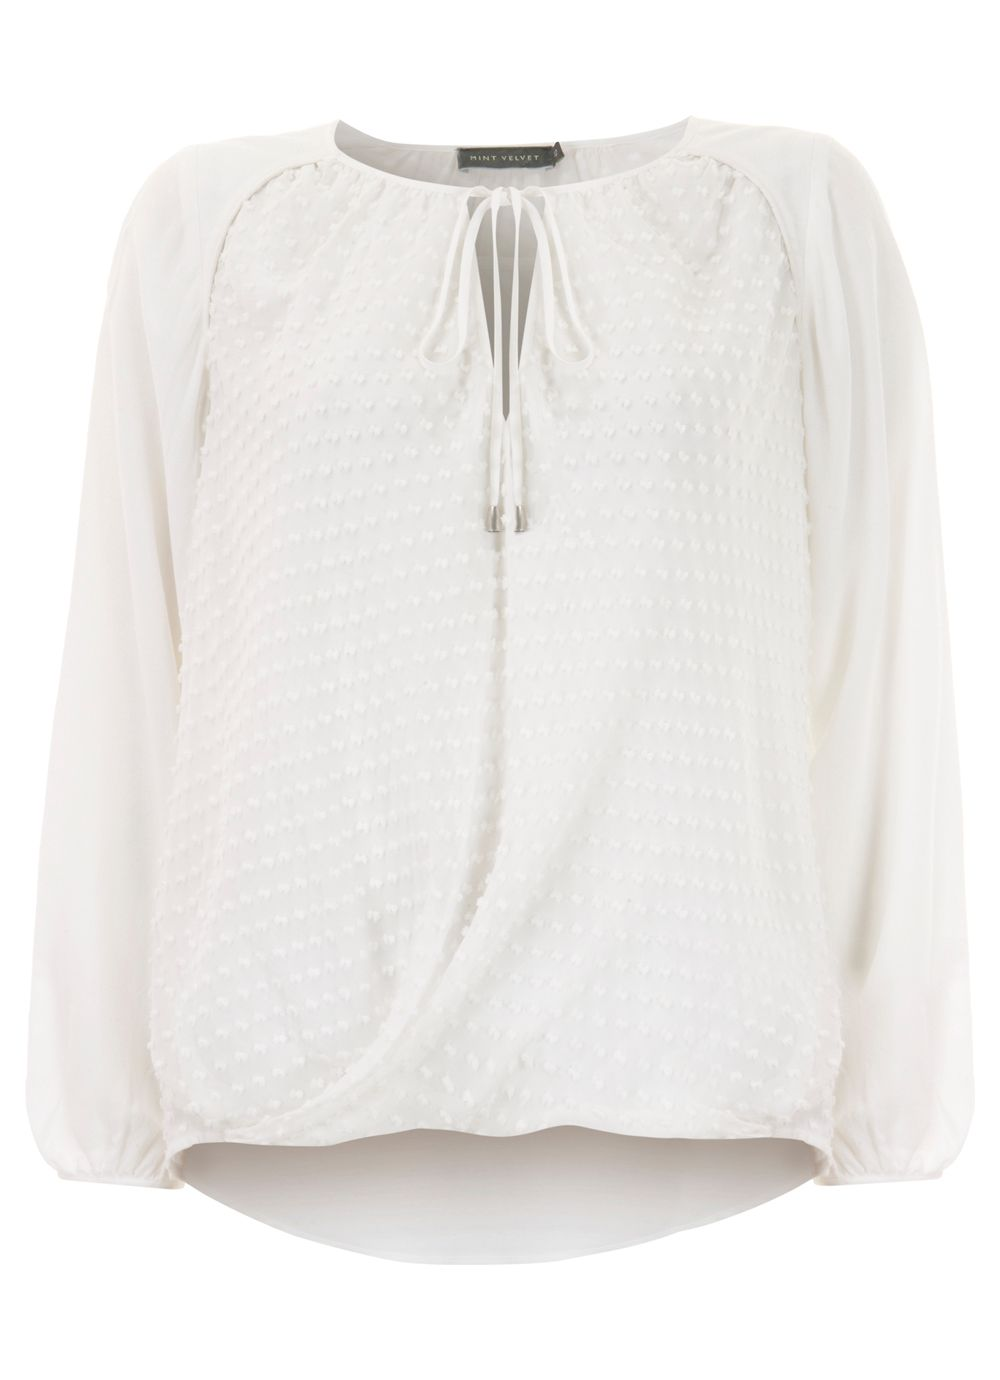 Ivory textured peasant blouse